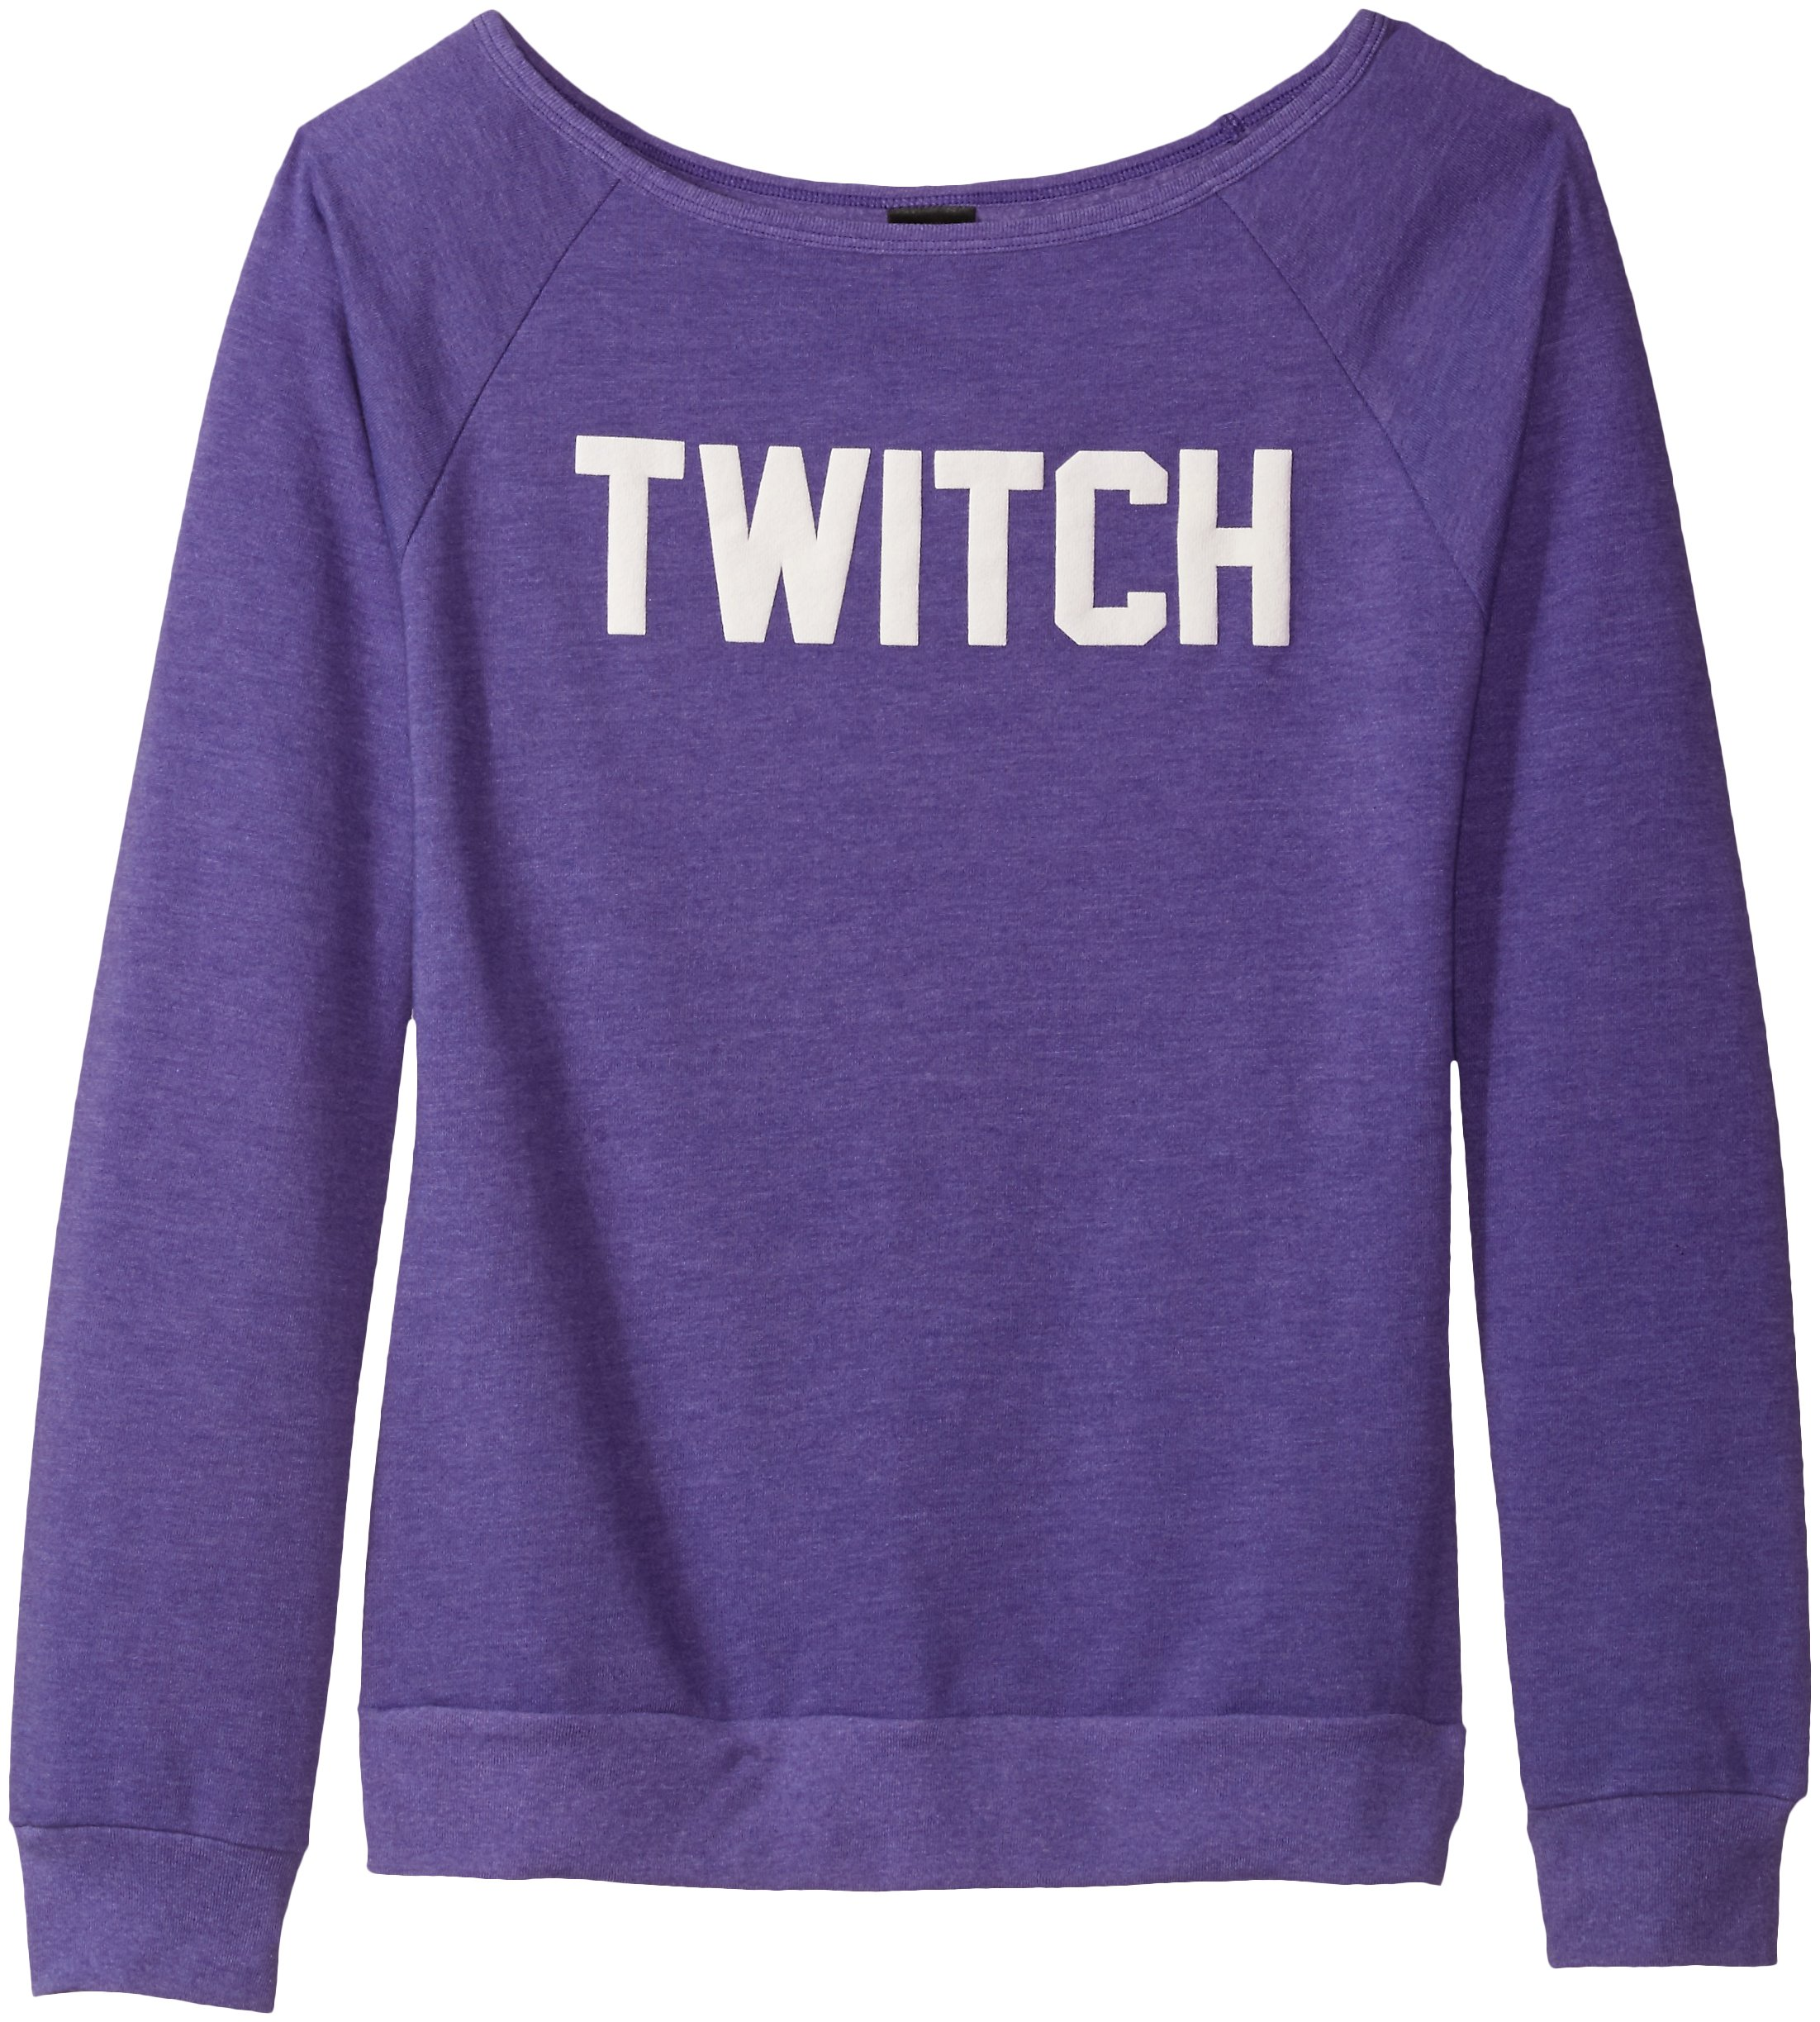 Twitch Ladies Off The Shoulder Sweatshirt (Medium, Heather Purple)